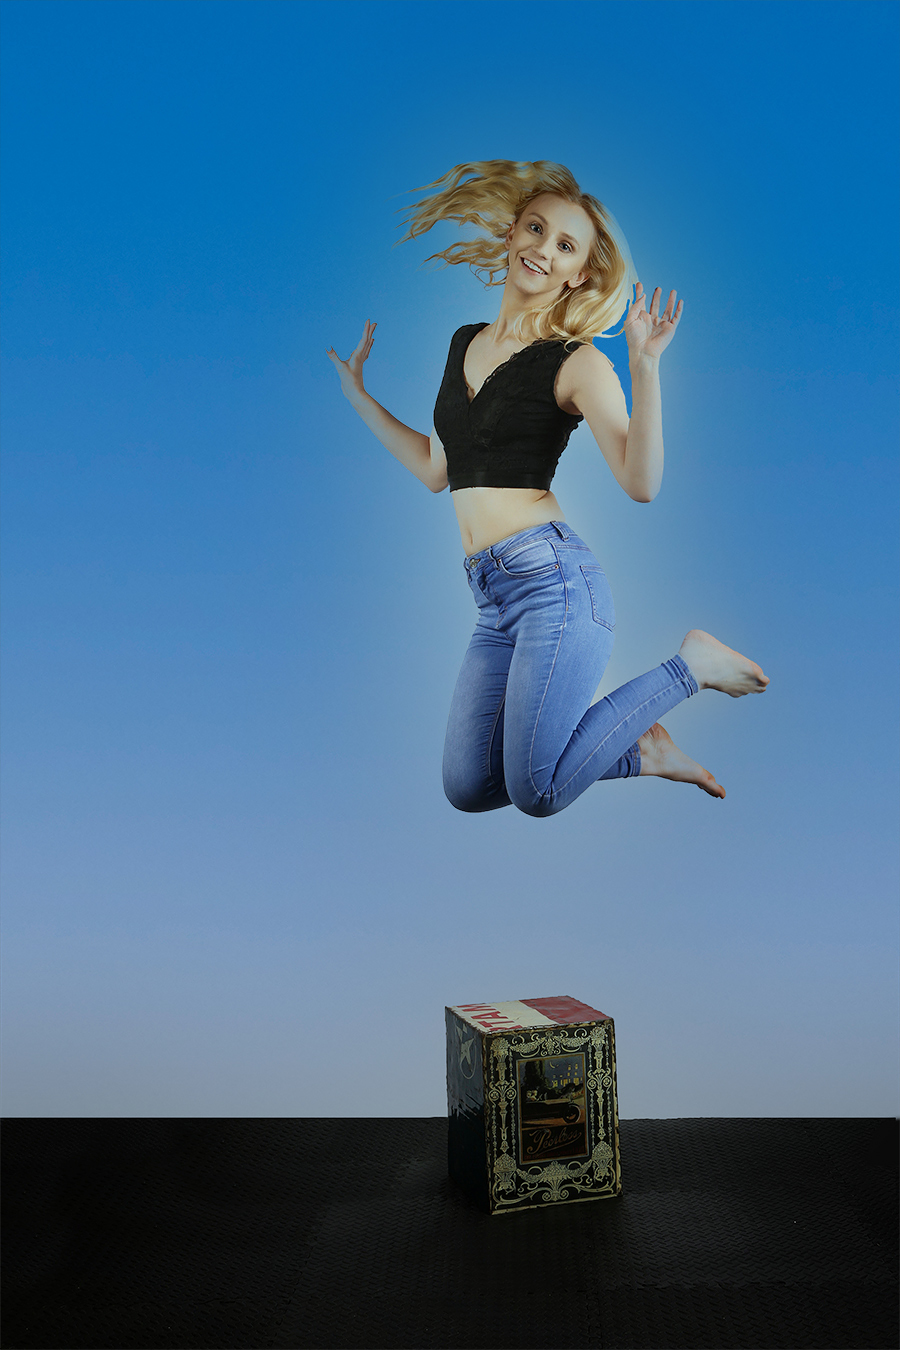 Jump for Joy / Photography by Malc Lander, Taken at Catchlight Pics Studio / Uploaded 27th August 2021 @ 09:18 PM